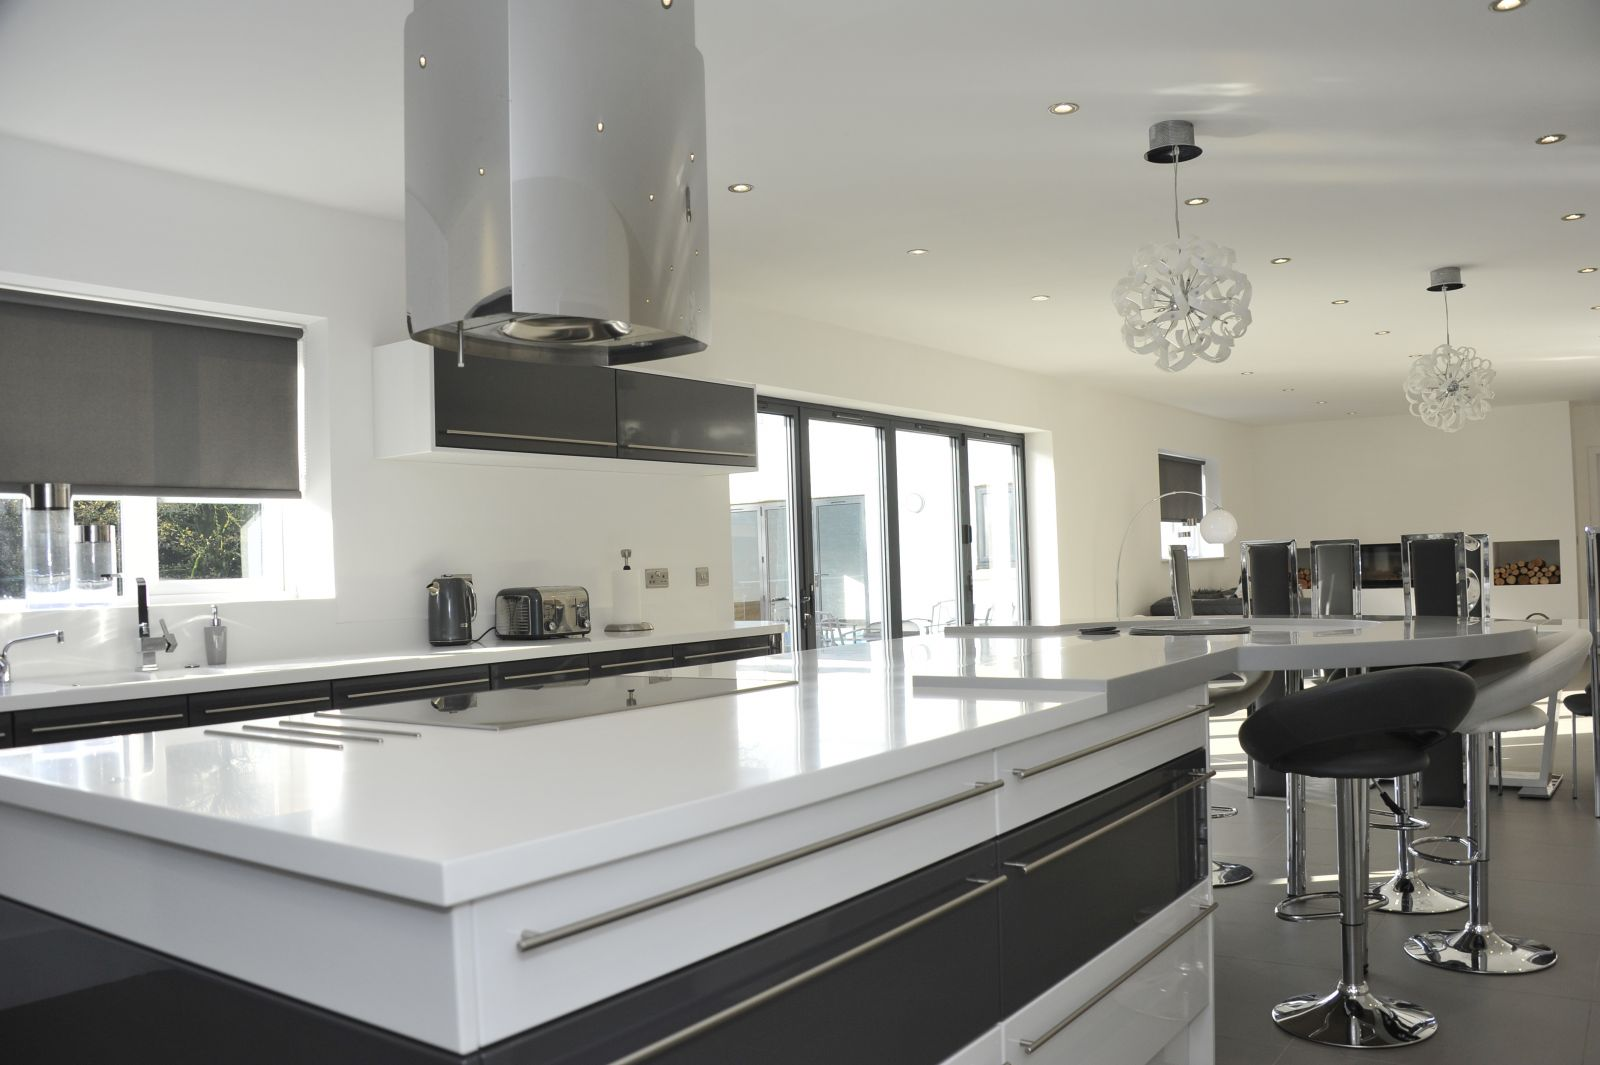 kitchen blog sigma 3 using wood is also a great way to zone your kitchen island below you can see how the solid wood surface is used as the seating are the oval shape is a